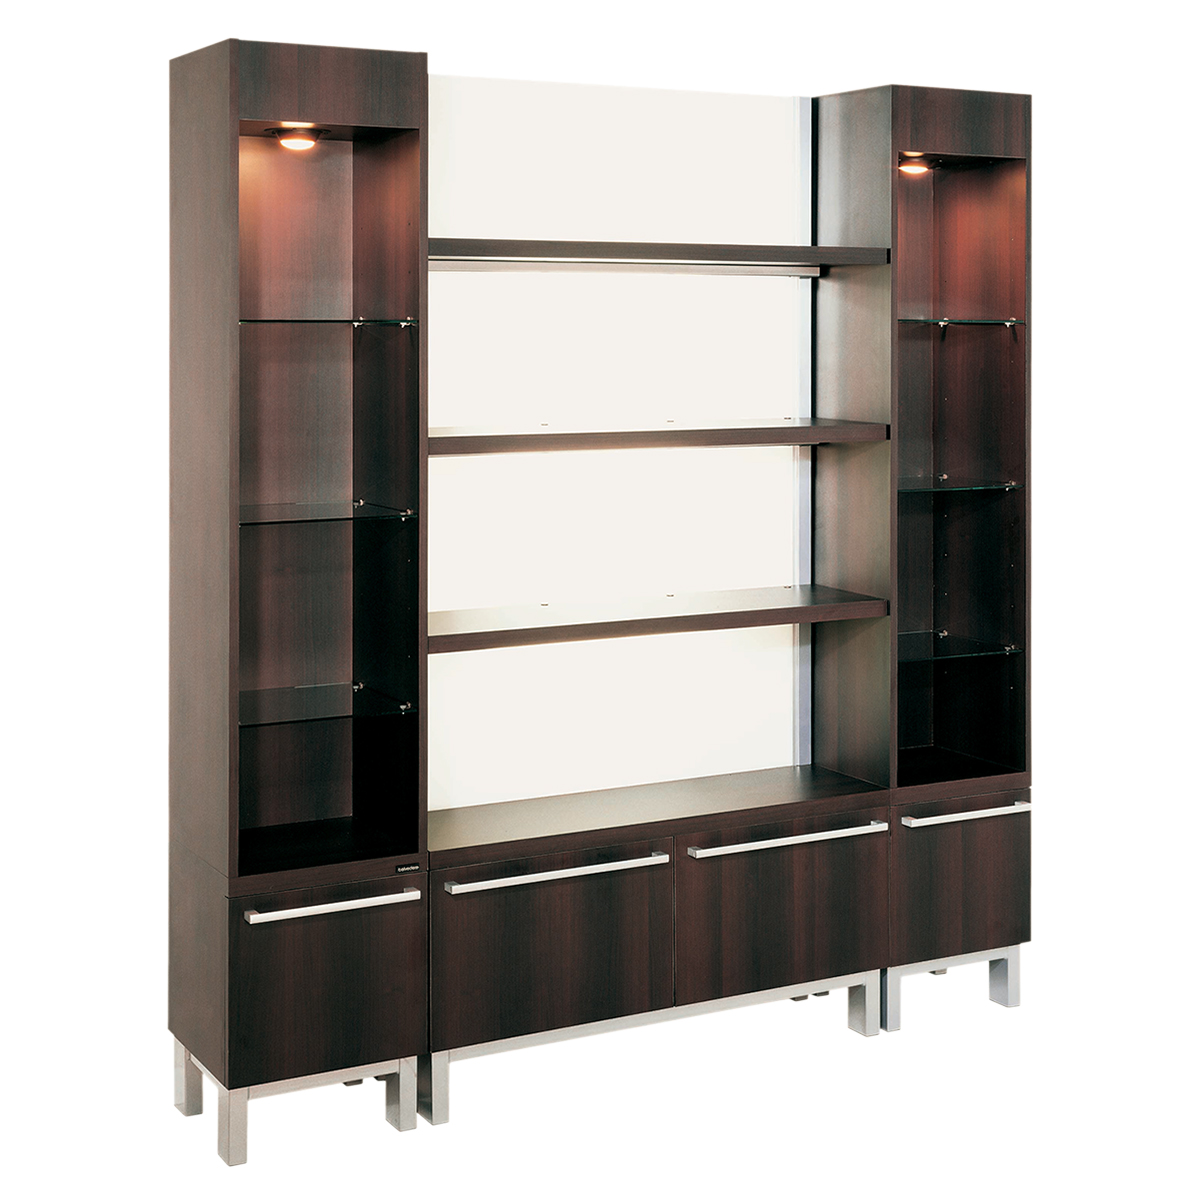 Belvedere KT182/KT183 Kallista Retail Display Cases  main product image